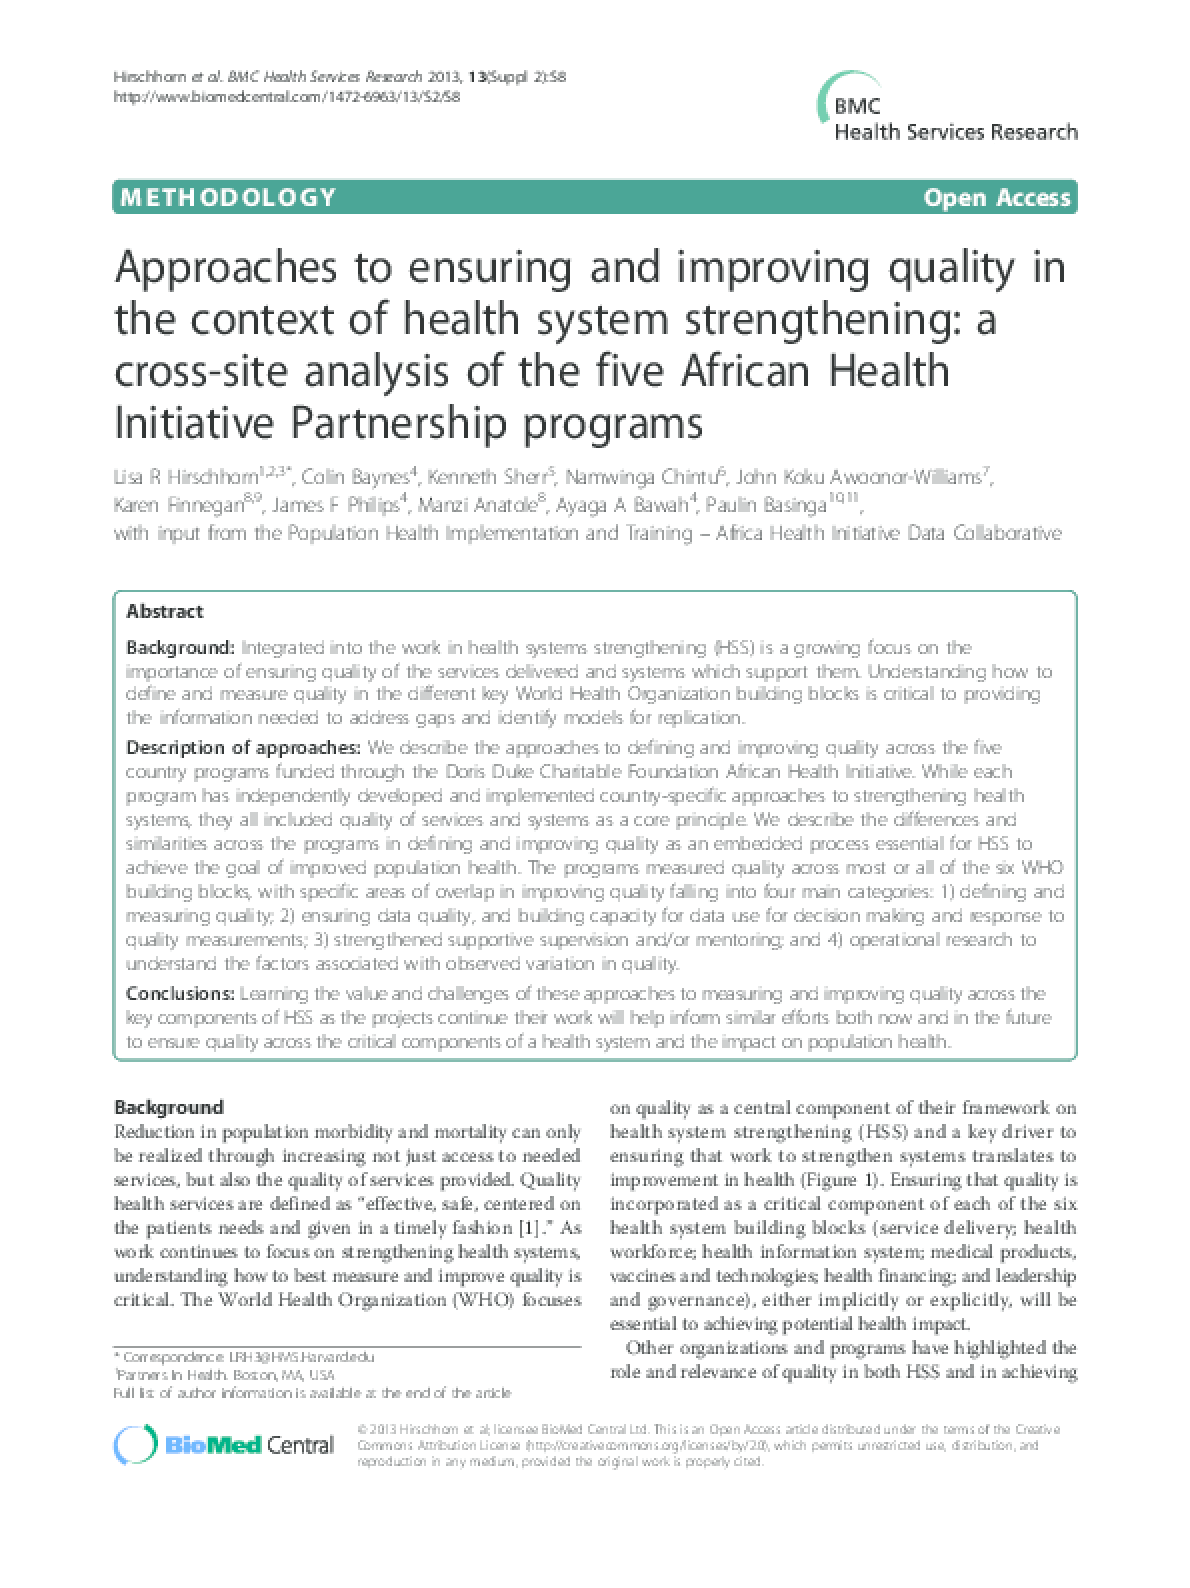 Approaches to Ensuring and Improving Quality in the Context of Health System Strengthening: a Cross-site Analysis of the five African Health Initiative Partnership Programs